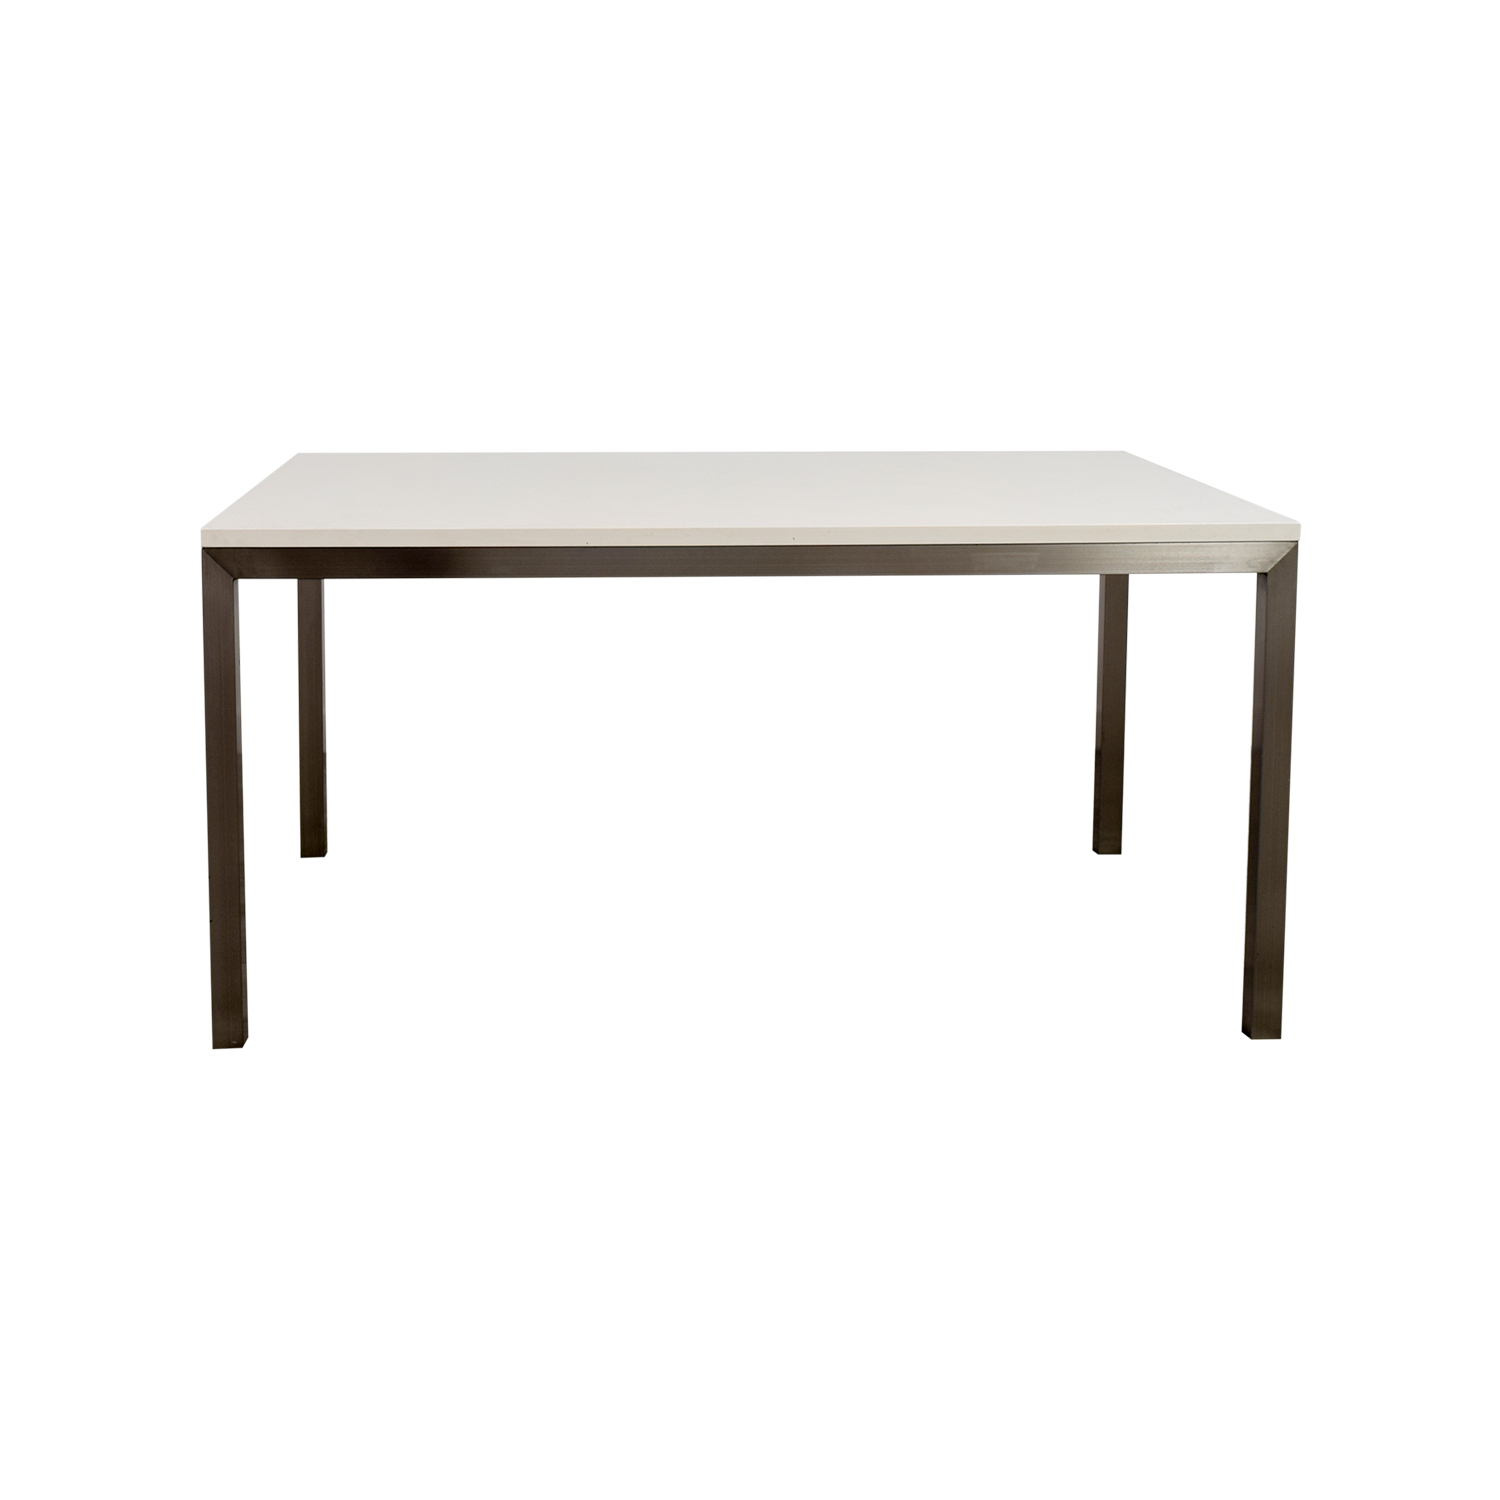 Crate & Barrel Parsons Dining Table sale